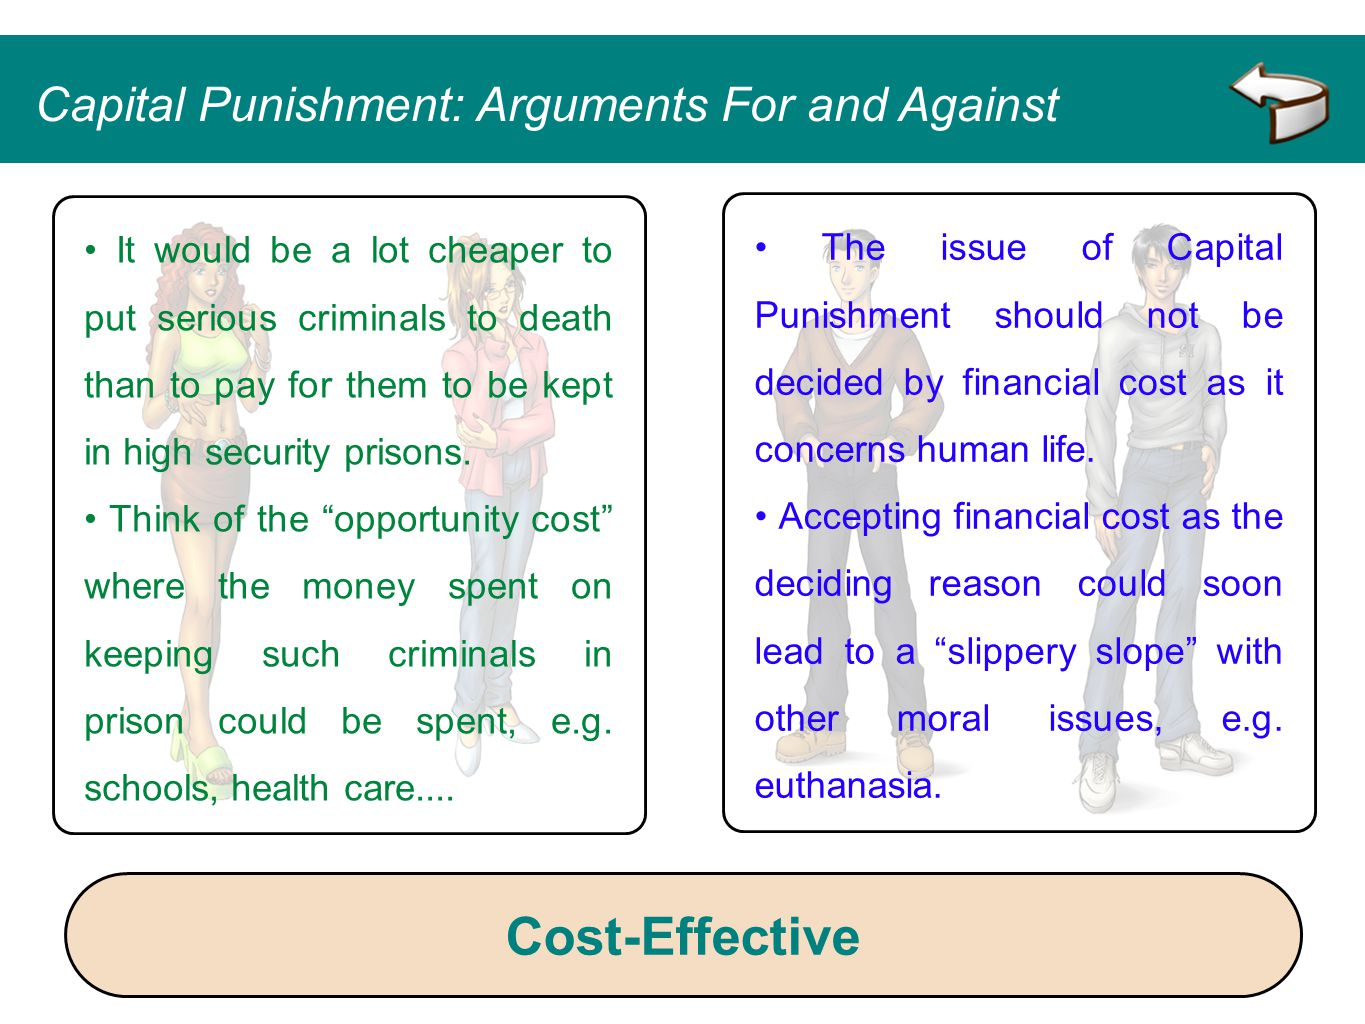 Cost-Effective Capital Punishment: Arguments For and Against